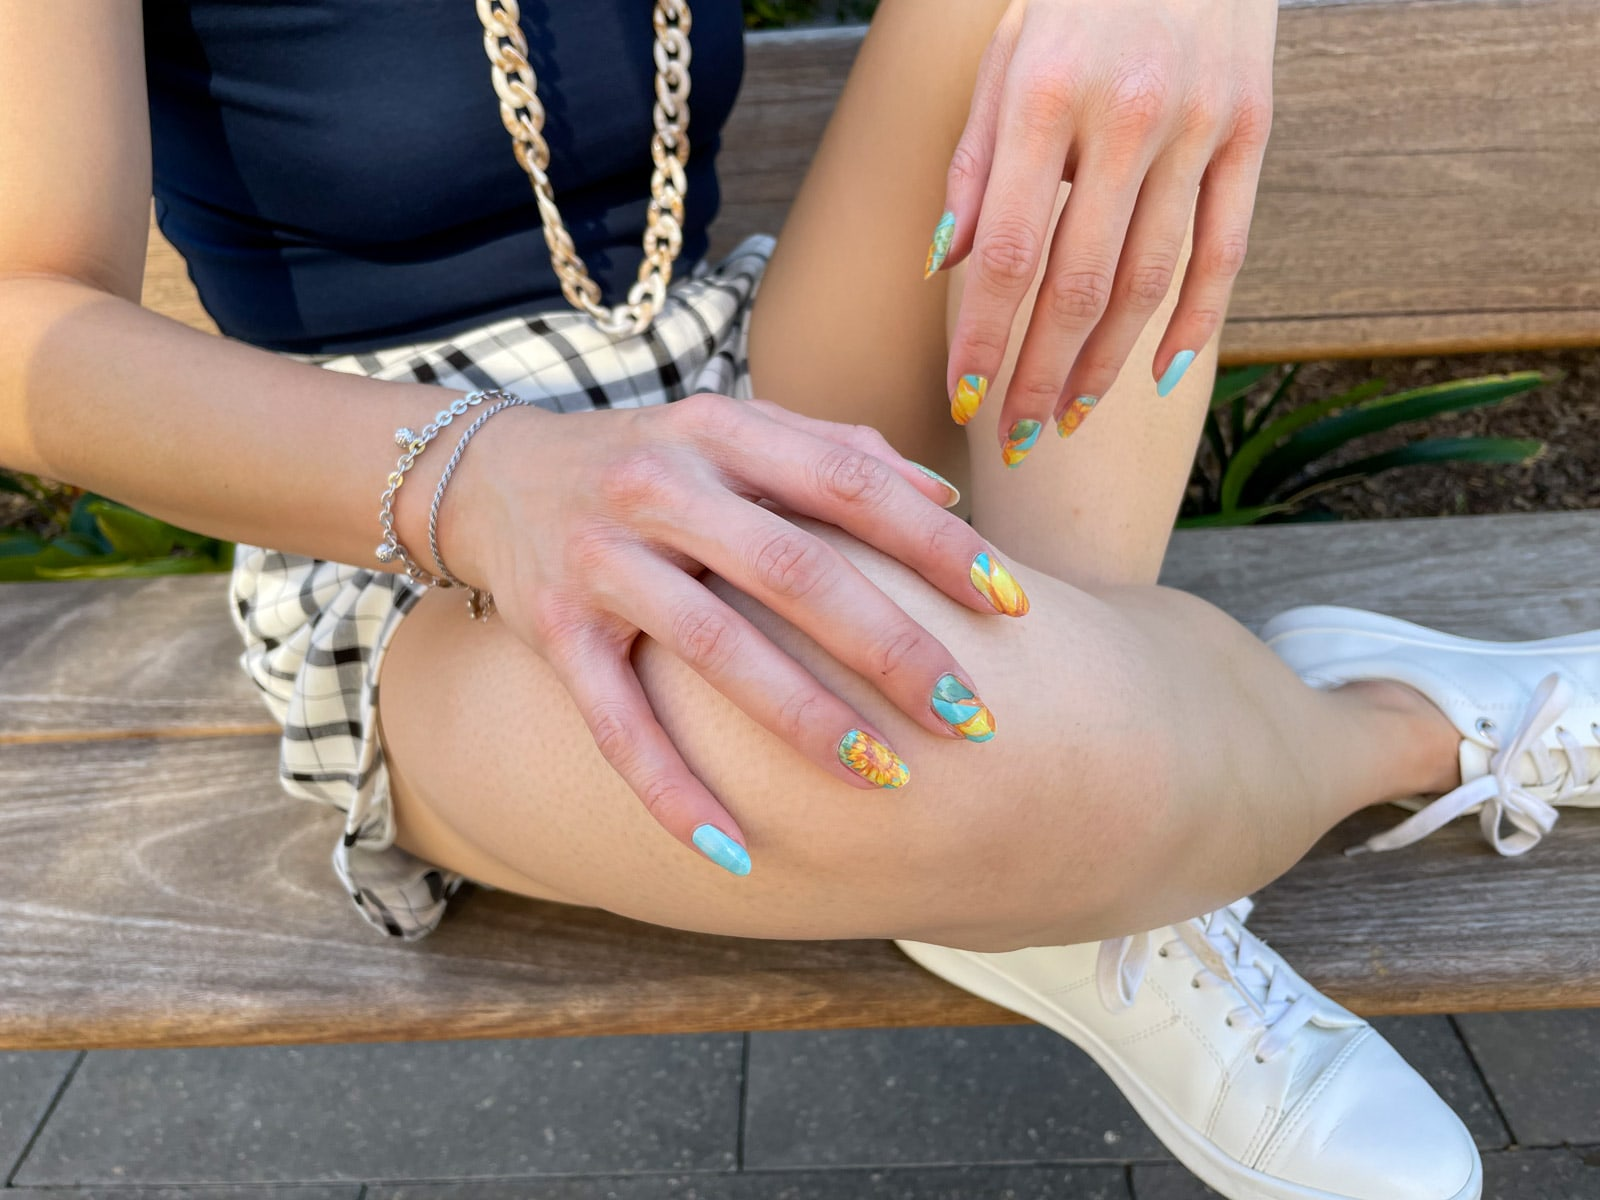 image 5: A close-up of the hands of the woman in image 1. She has yellow and sky blue nail art, resembling sunflowers. Her hands are resting on her knees and her legs are crossed.